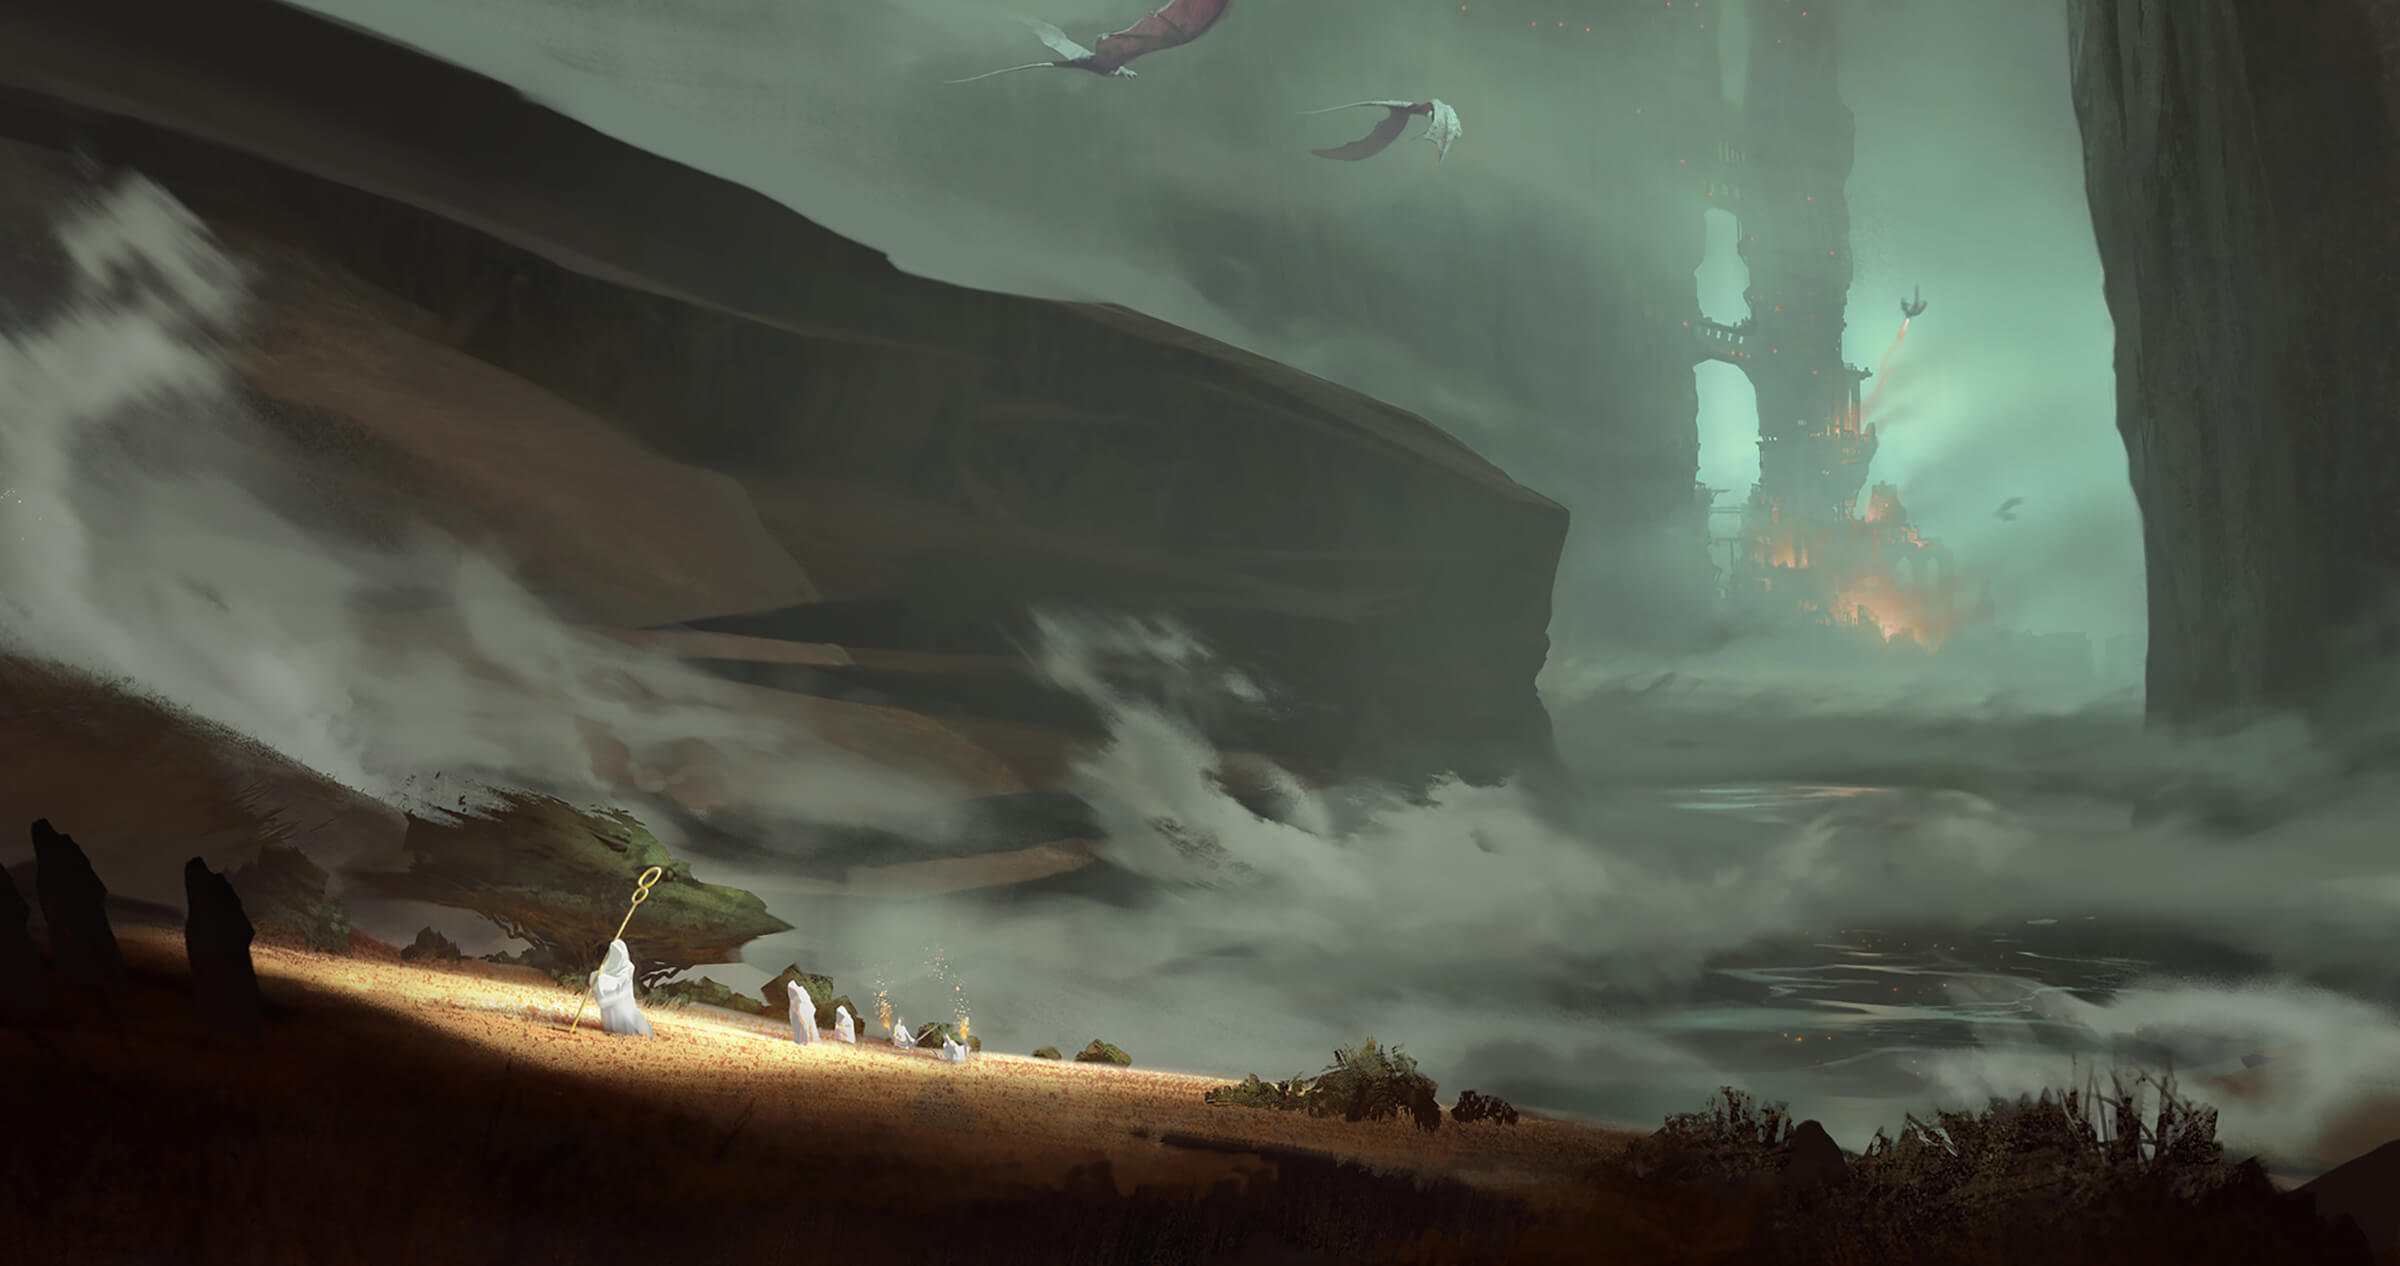 digital painting of pterodactyls flying over white-clad shepard-like characters toward a distant fiery structure